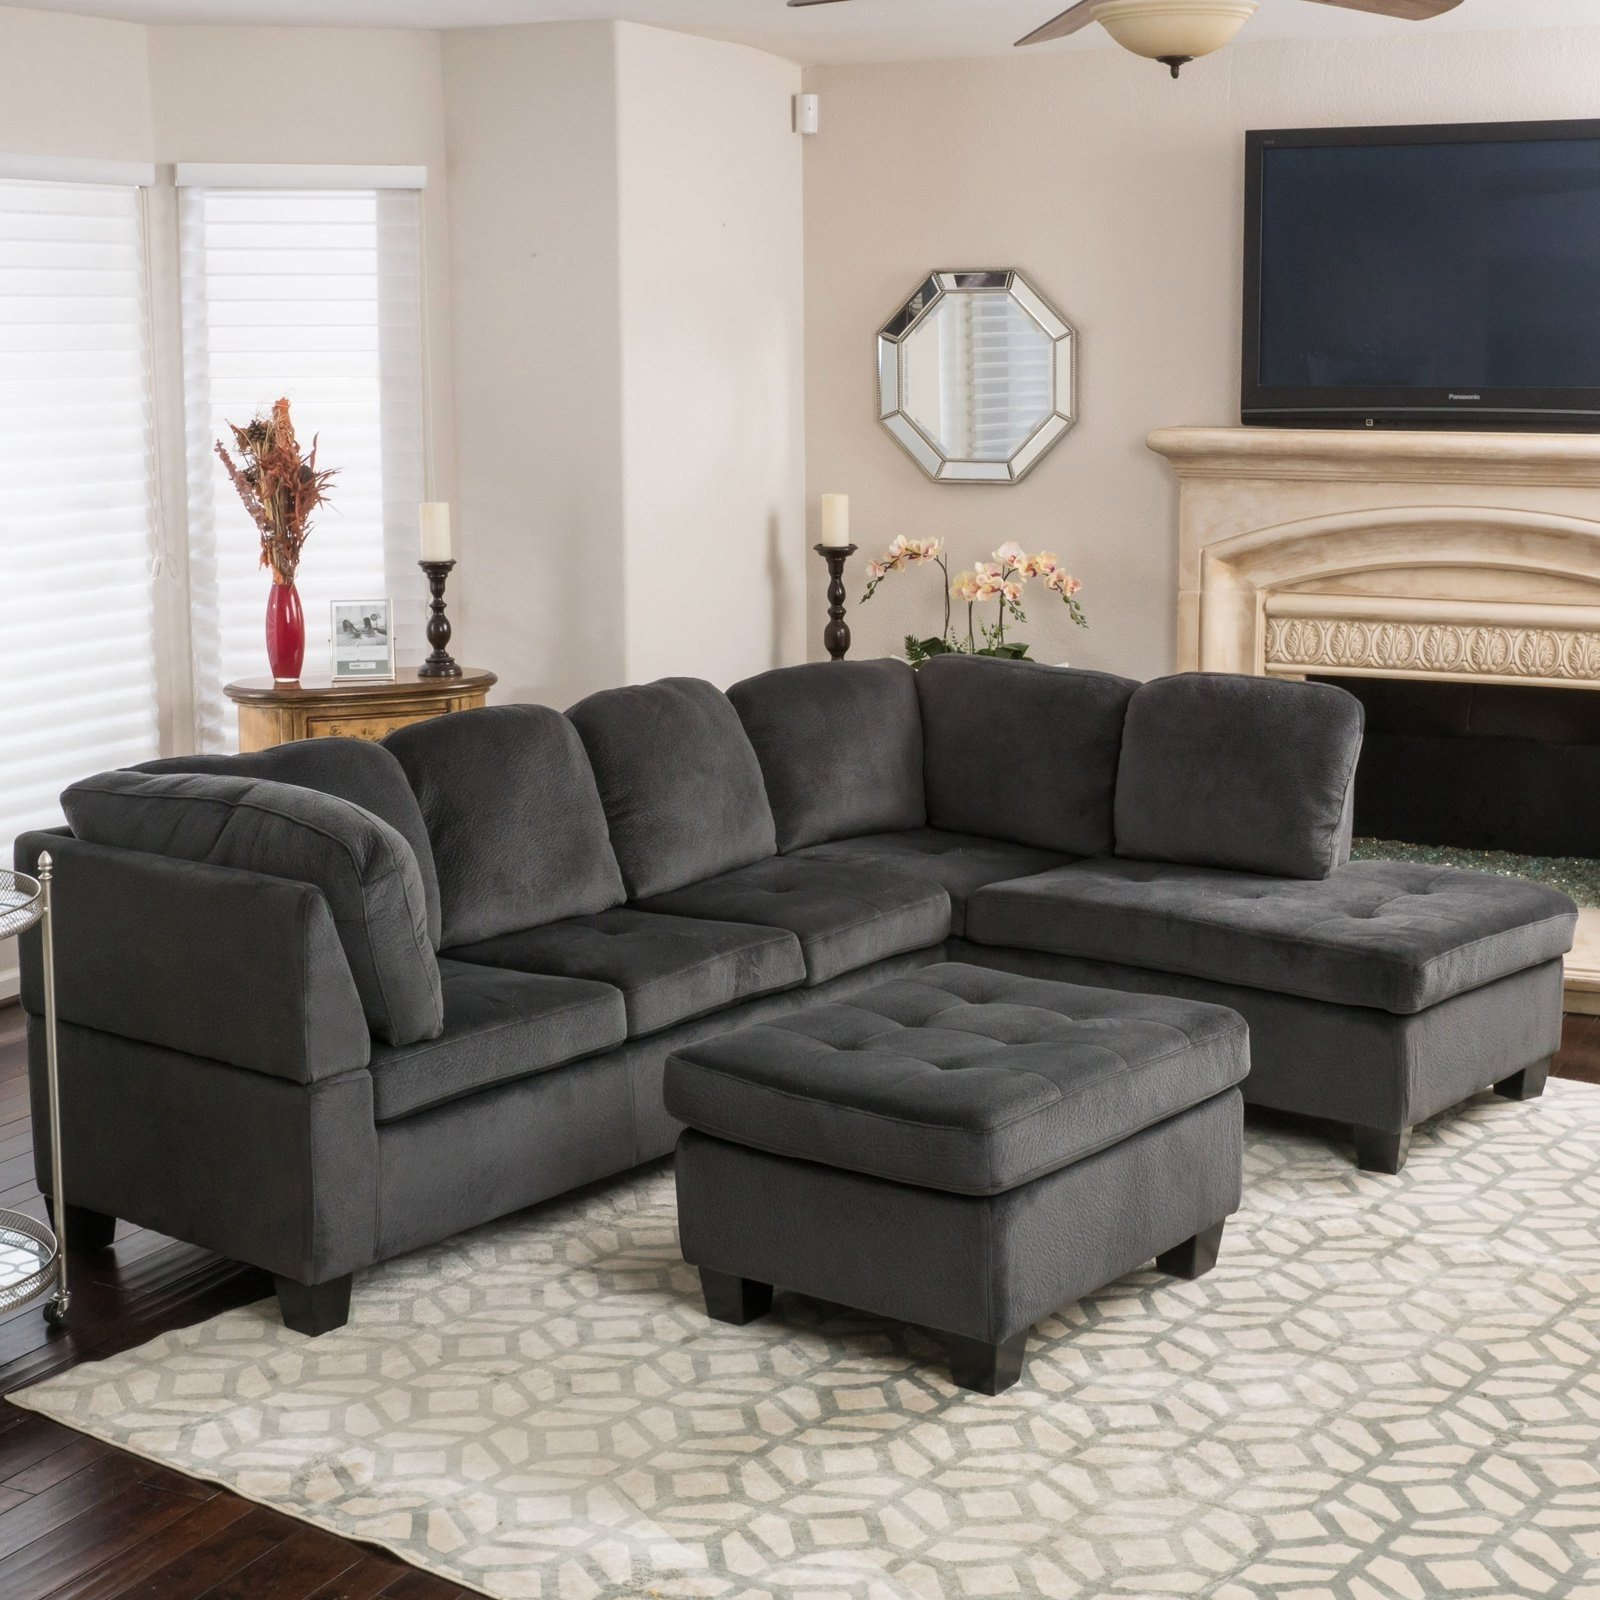 Evan 3 Piece Sectional Sofa | Hayneedle Regarding Evan 2 Piece Sectionals With Raf Chaise (Photo 10 of 30)